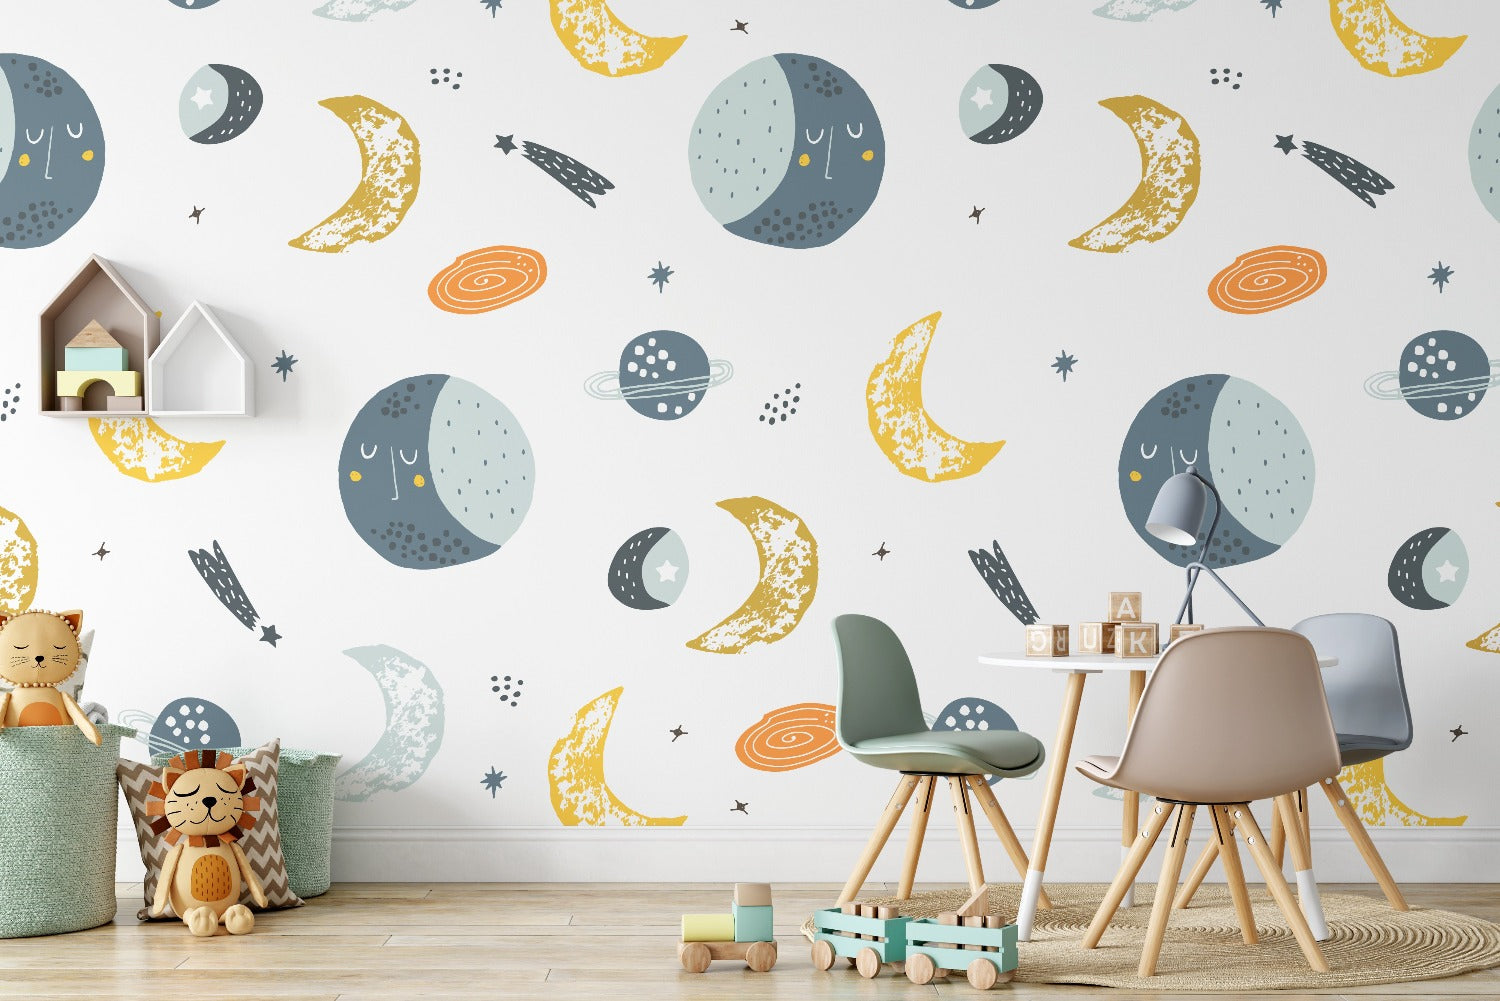 Wallpaper, peel and stick wallpaper, modern wallpaper, removable wallpaper, minimal wallpaper, floral wallpaper, designer wallpaper, home decor, home renovation, wall decor, wall art, wall covering, peel n stick, abstract wallpaper, love wallpaper